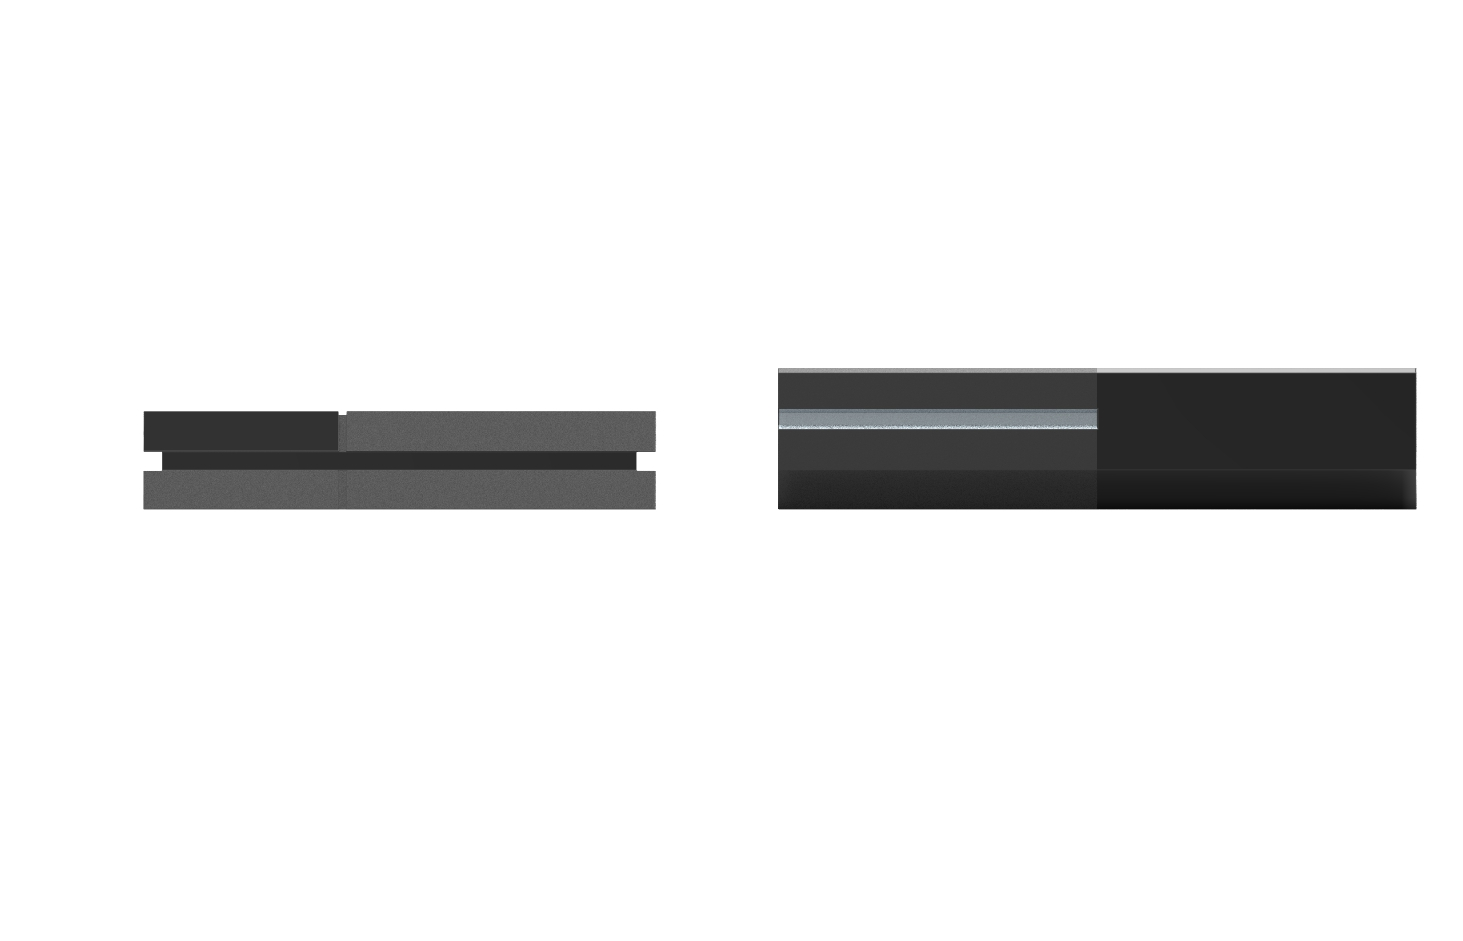 ps4 vs xbox one console size comparison ps4 is on the left click an    Xbox One Vs Ps4 Size